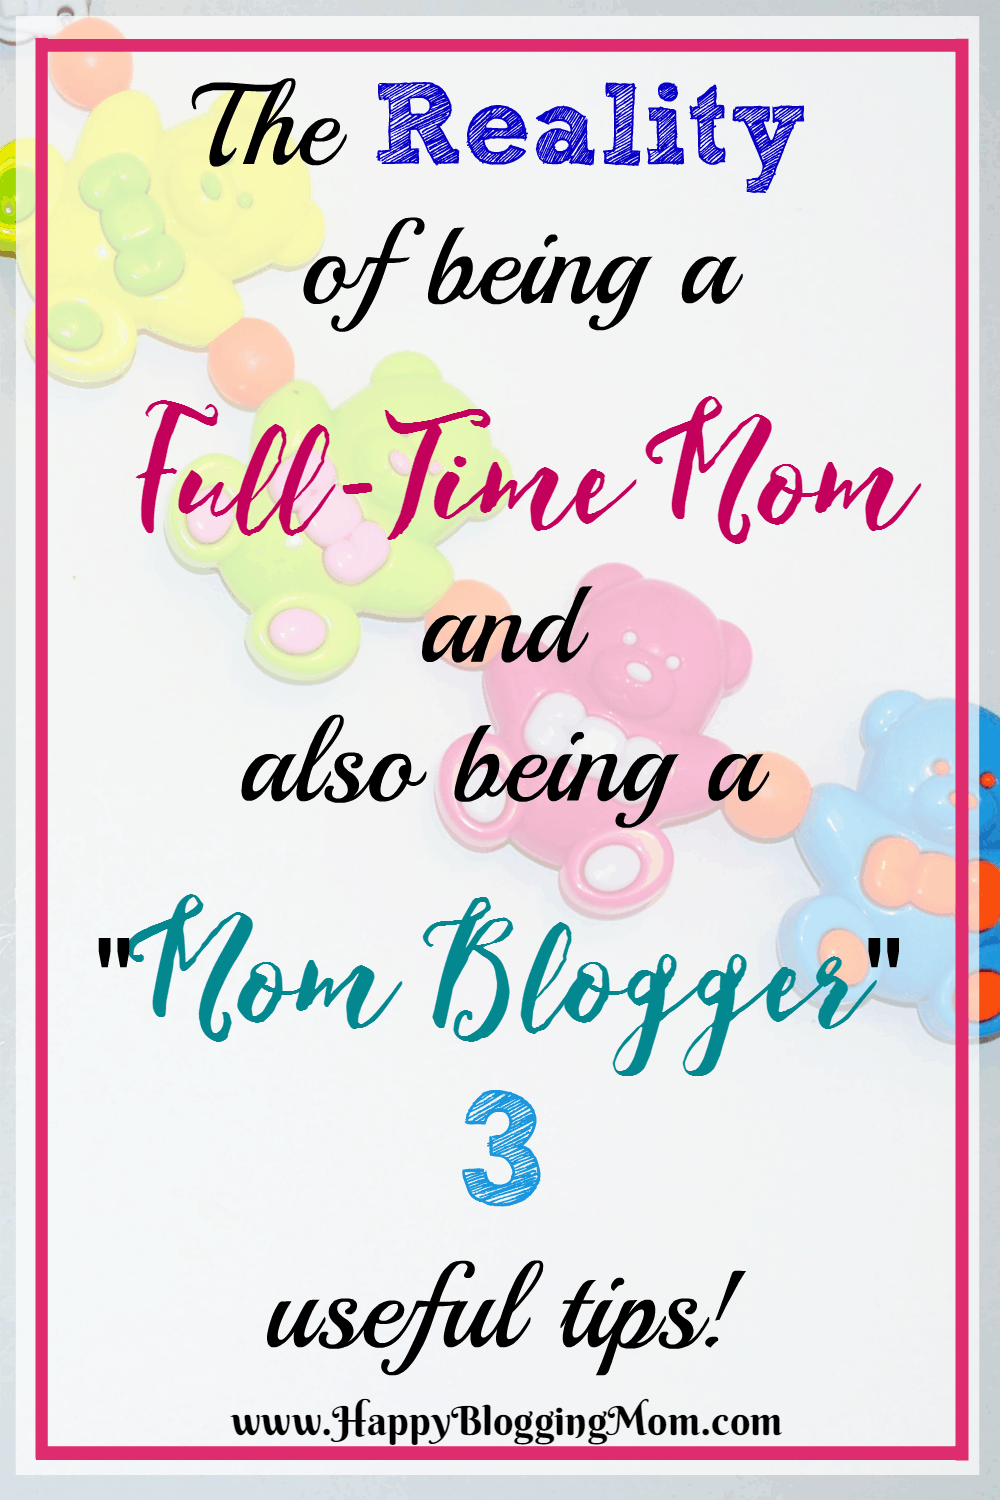 The reality of being a full time mom and mom blogger